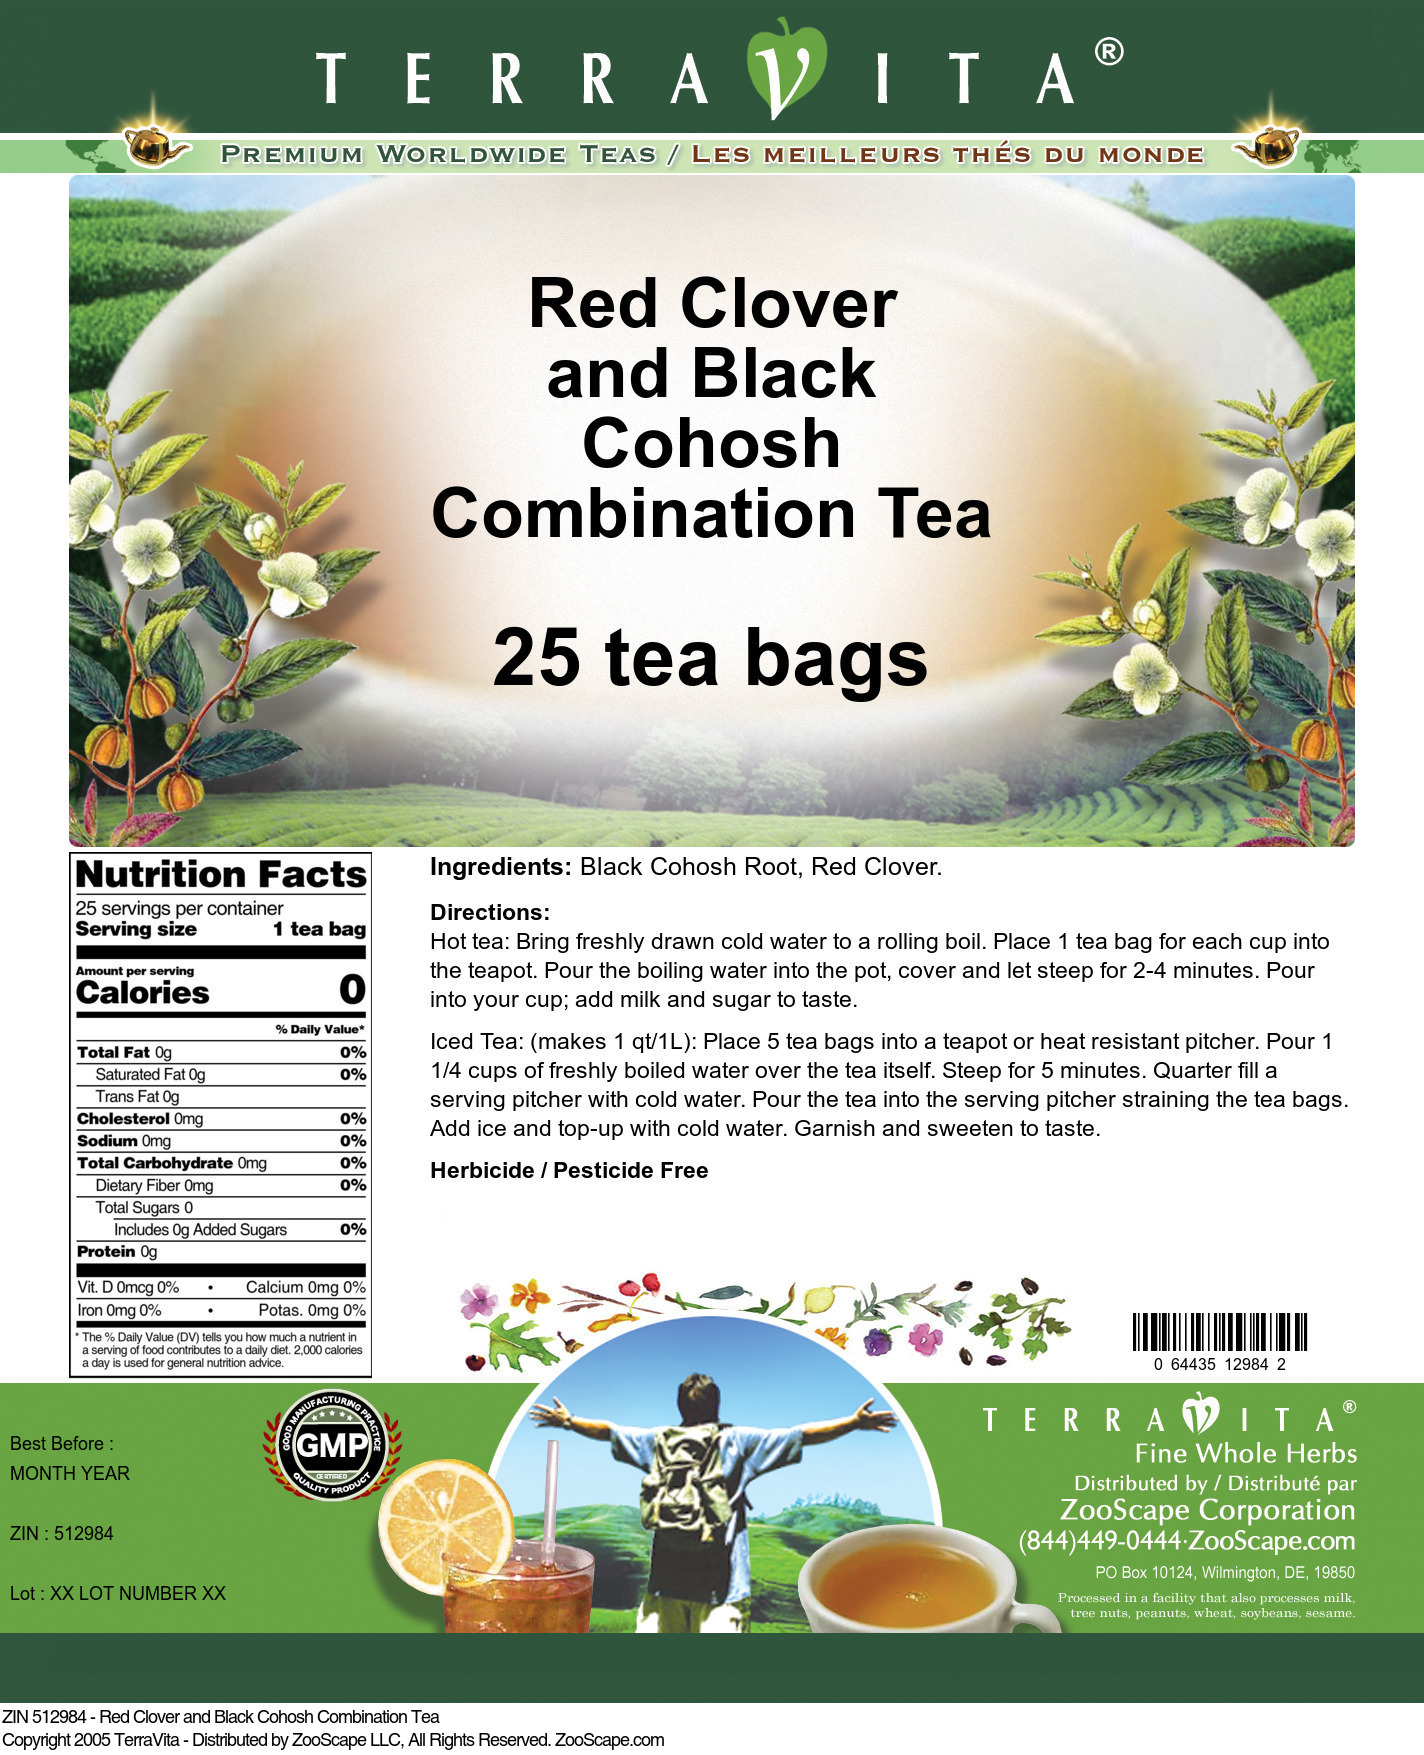 Red Clover and Black Cohosh Combination Tea